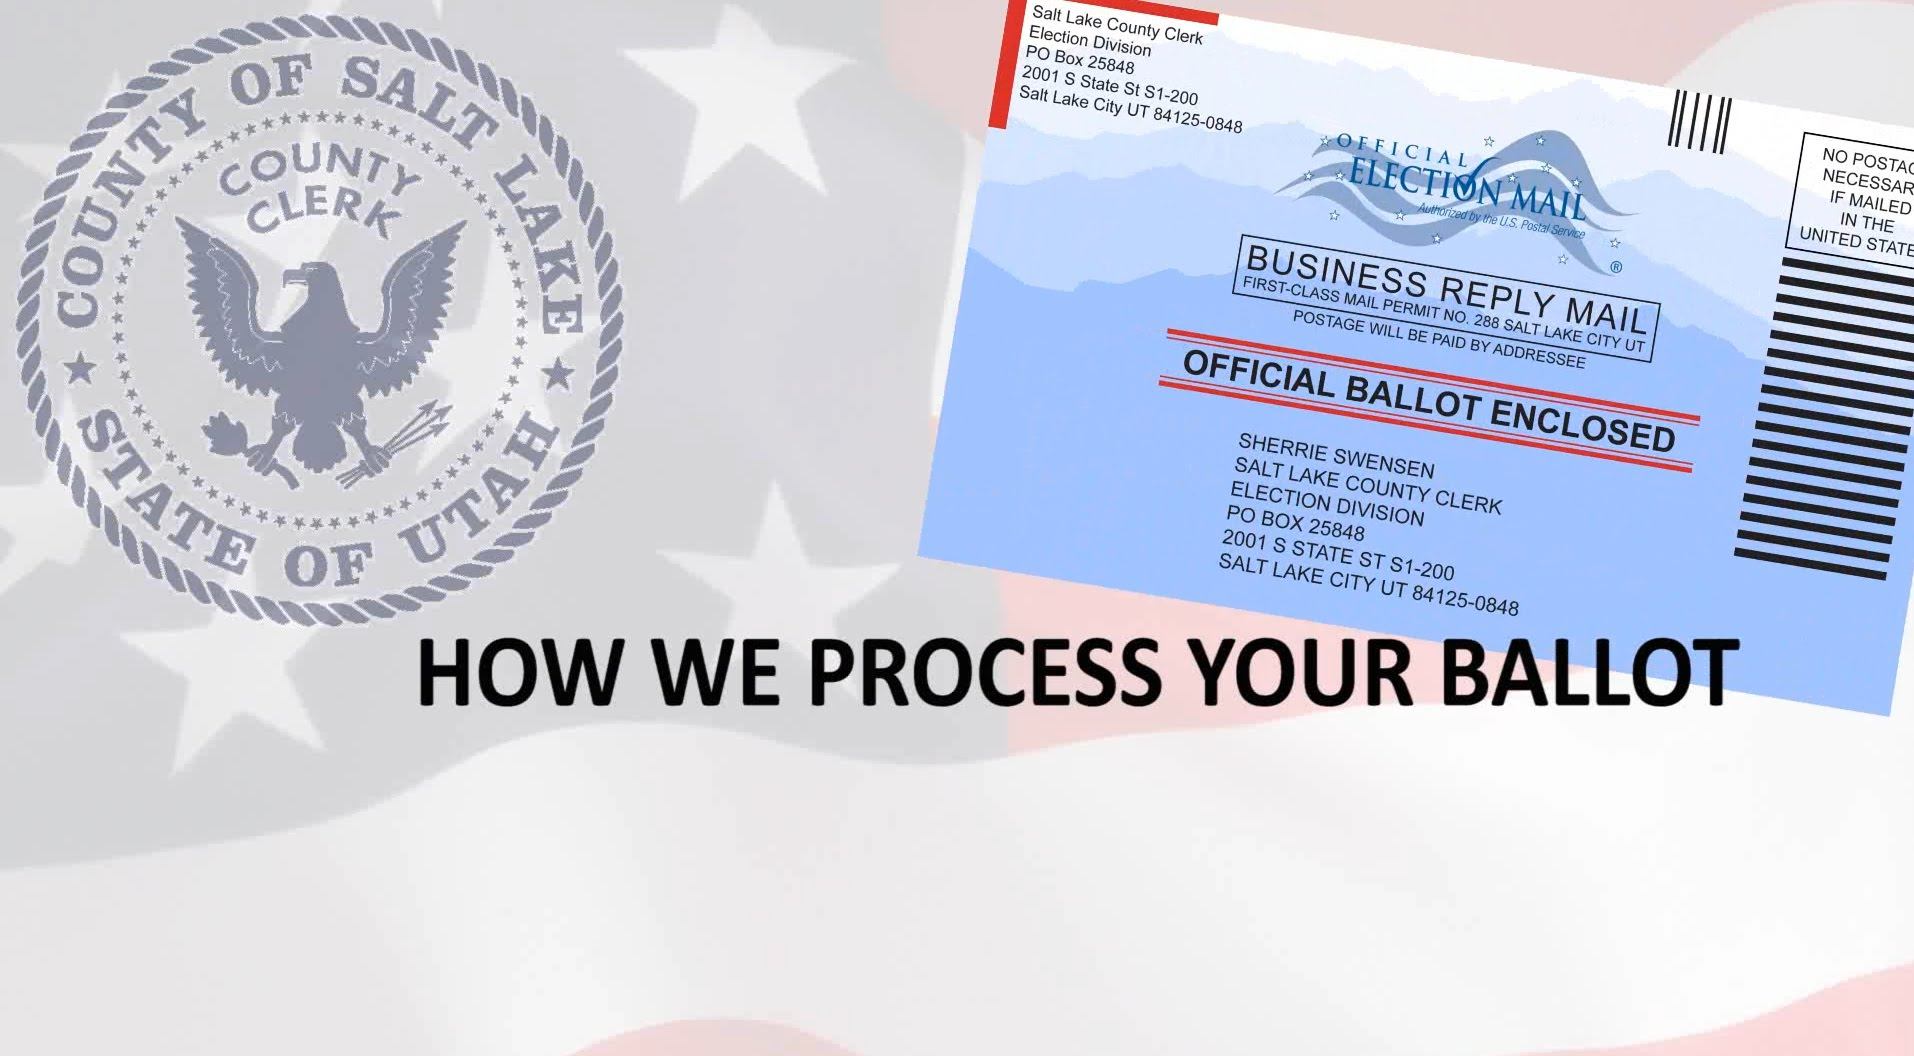 HOW-WE-PROCESS-YOUR-BALLOT